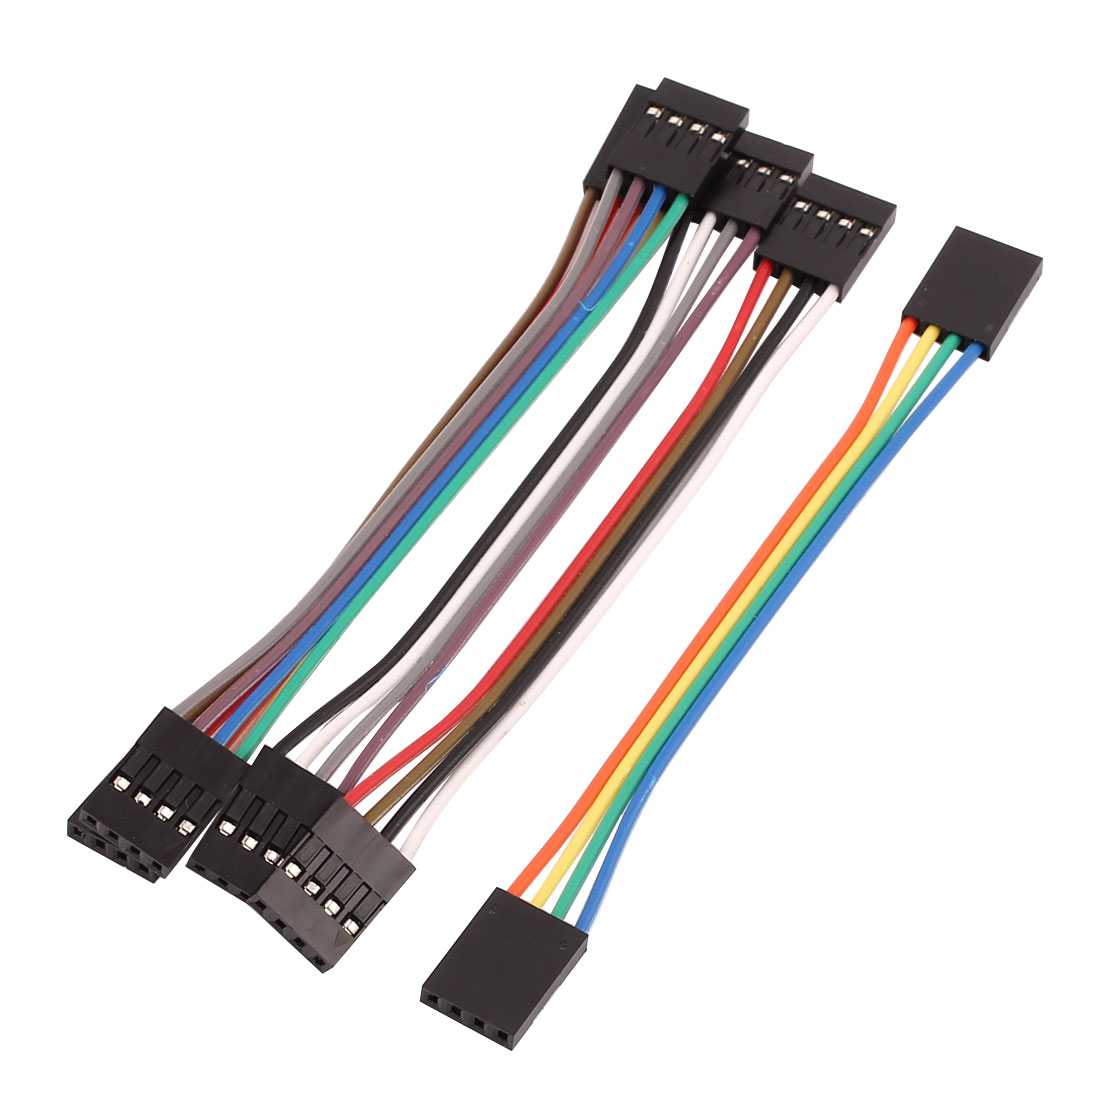 5 Pcs Female to Female 4P Jumper Wire Ribbon Cable Pi Pic Breadboard DIY 10cm Long